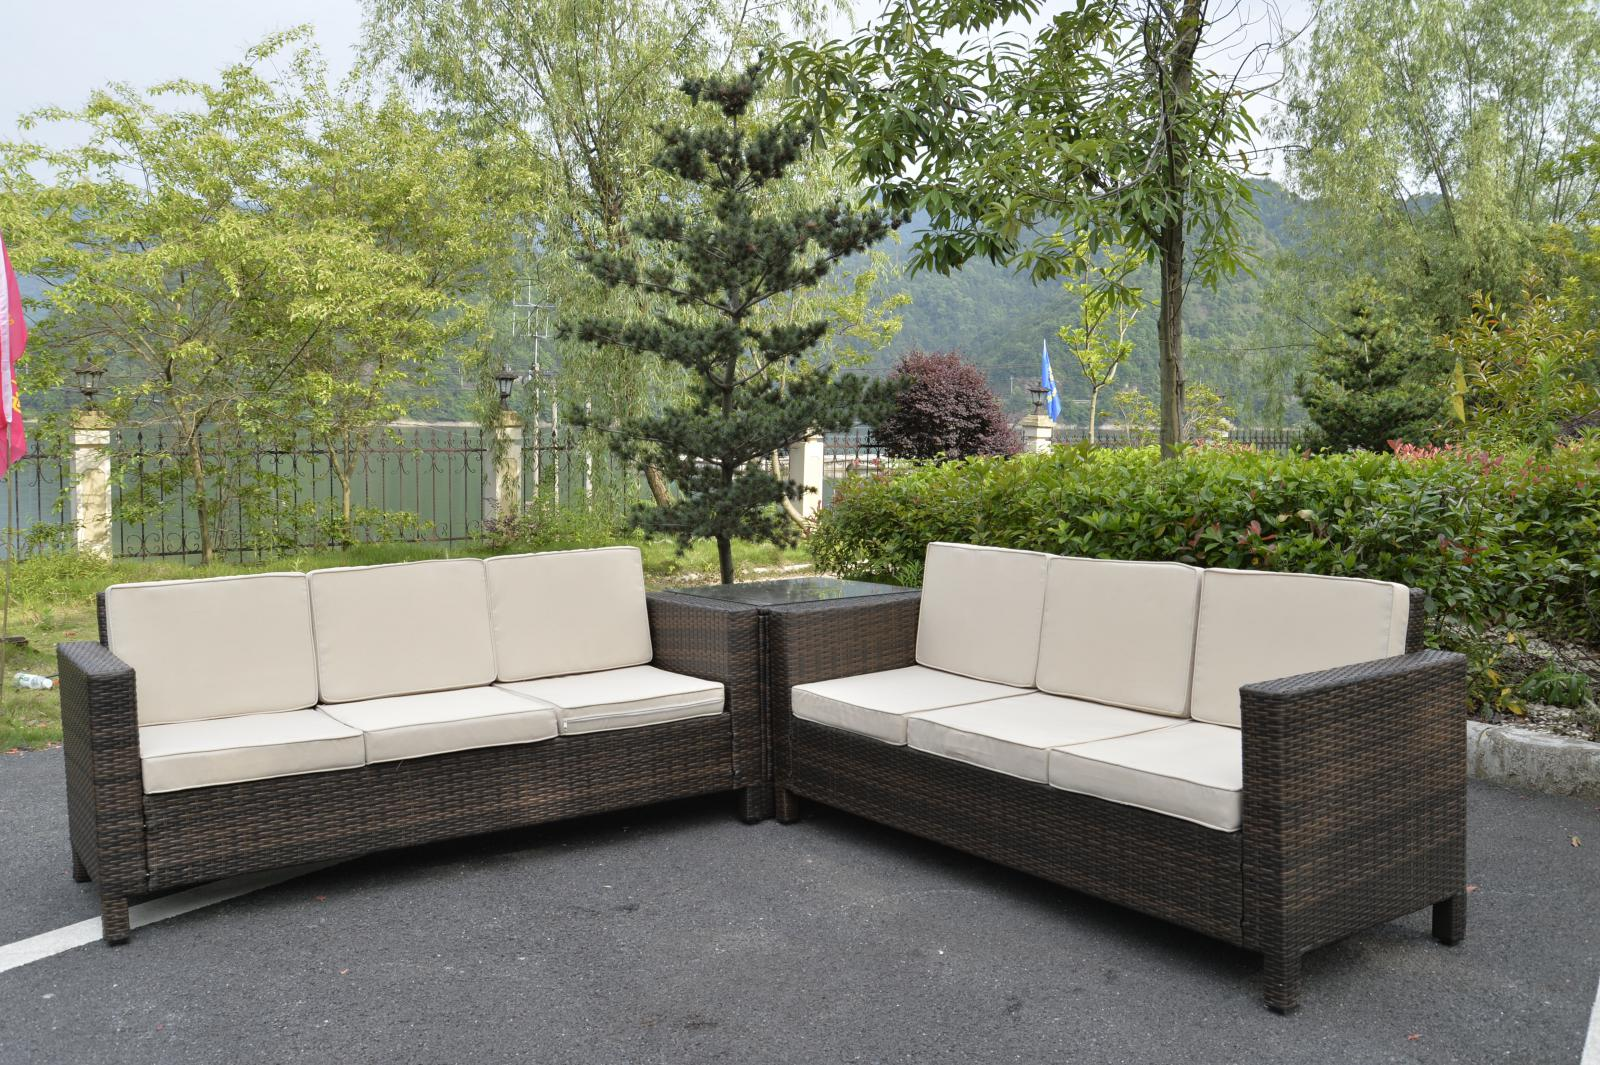 rattan garden furniture set sofa conservatory outdoor wicker patio weave ebay. Black Bedroom Furniture Sets. Home Design Ideas